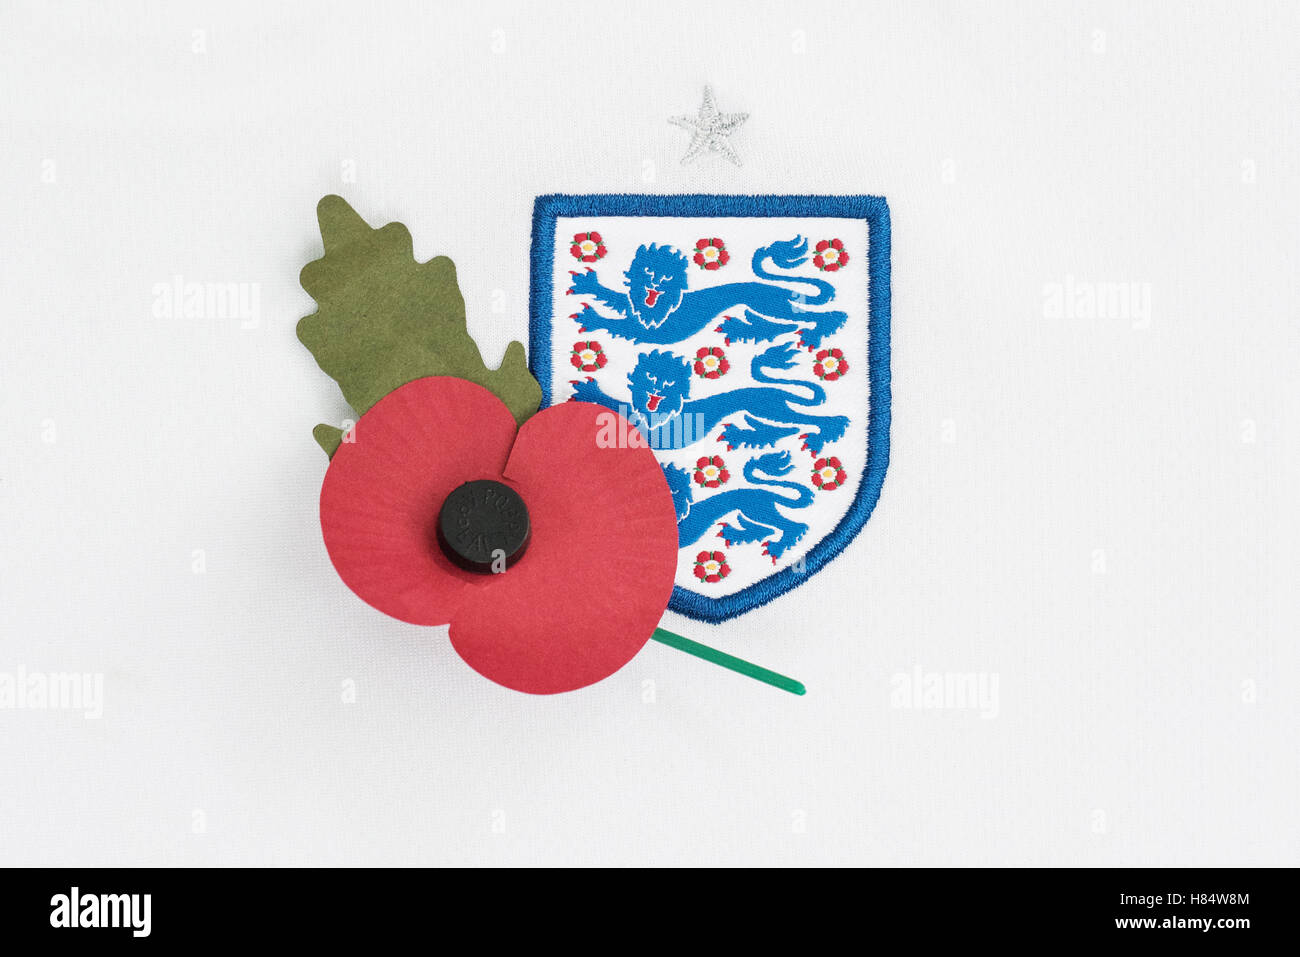 FIFA has banned players from England and Scotland from wearing poppies on their kits during their clash on November - Stock Image